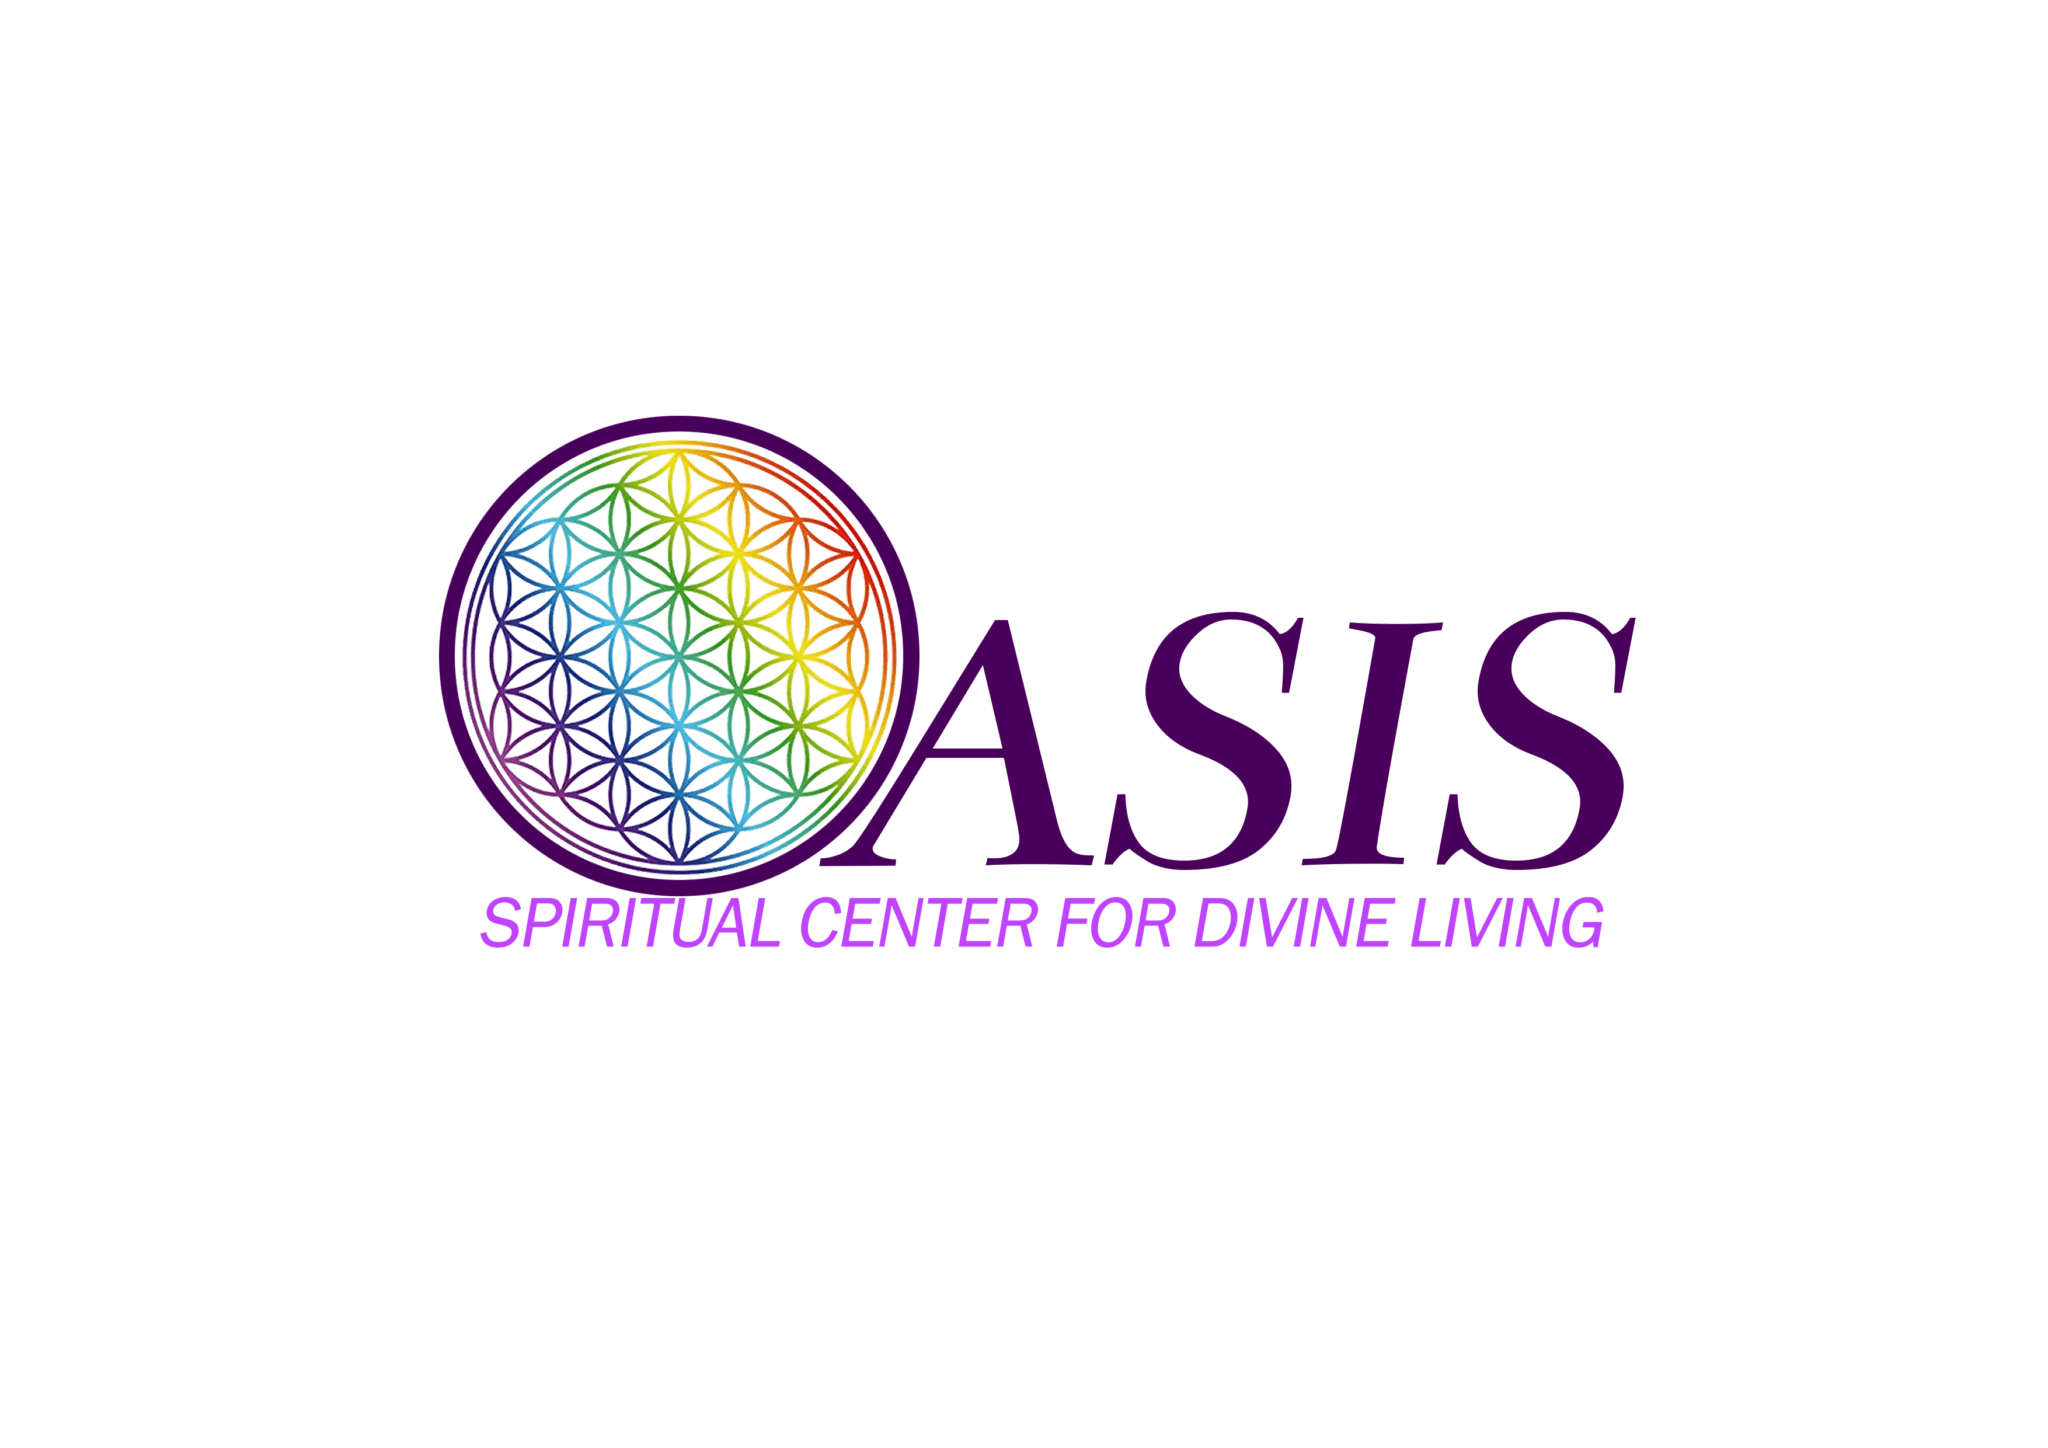 Oasis Spiritual Center for Divine Living